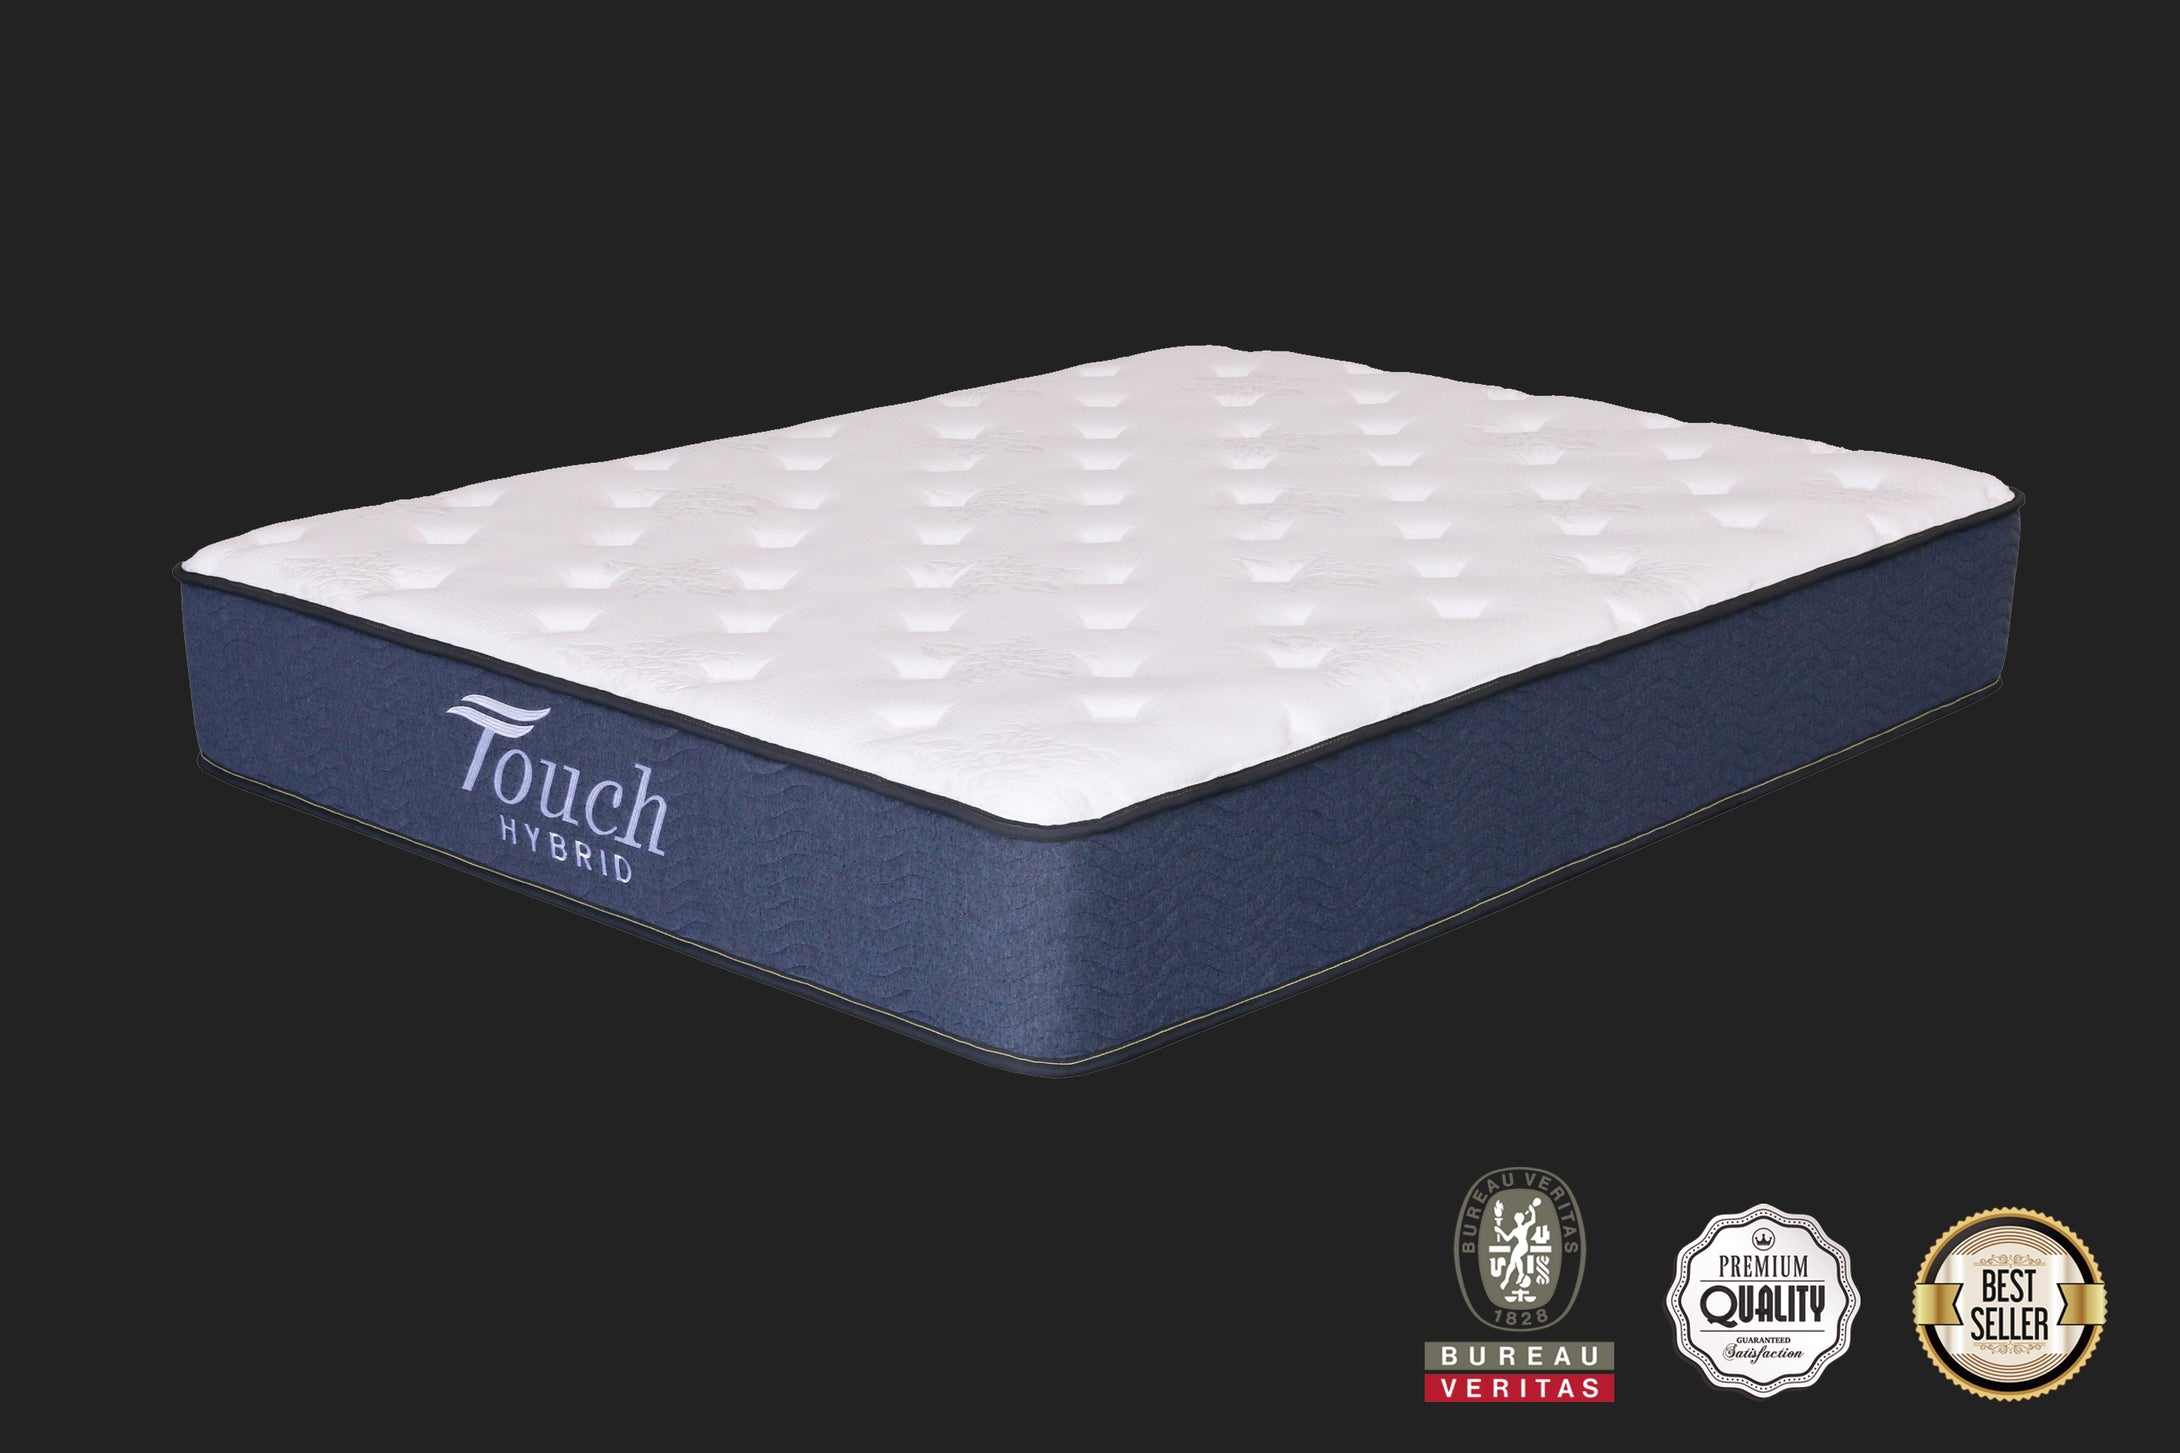 Touch Hybrid Mattress - Full